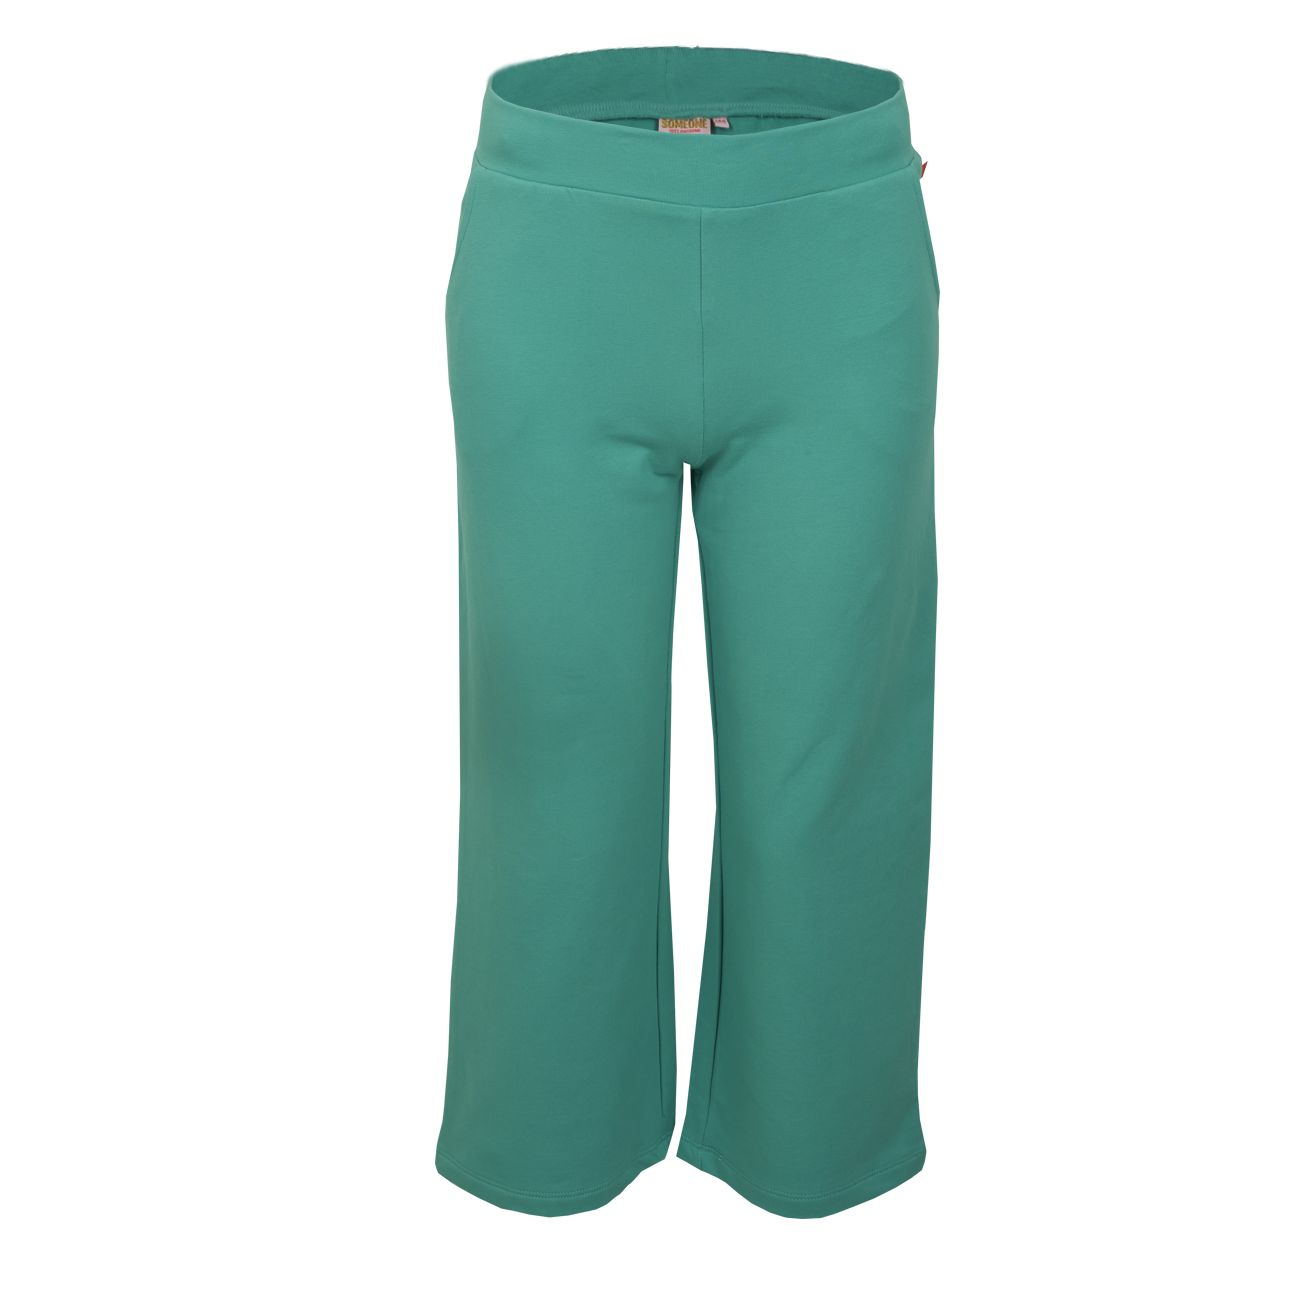 Culotte 134 Mint SOMEONE 100% Awesome